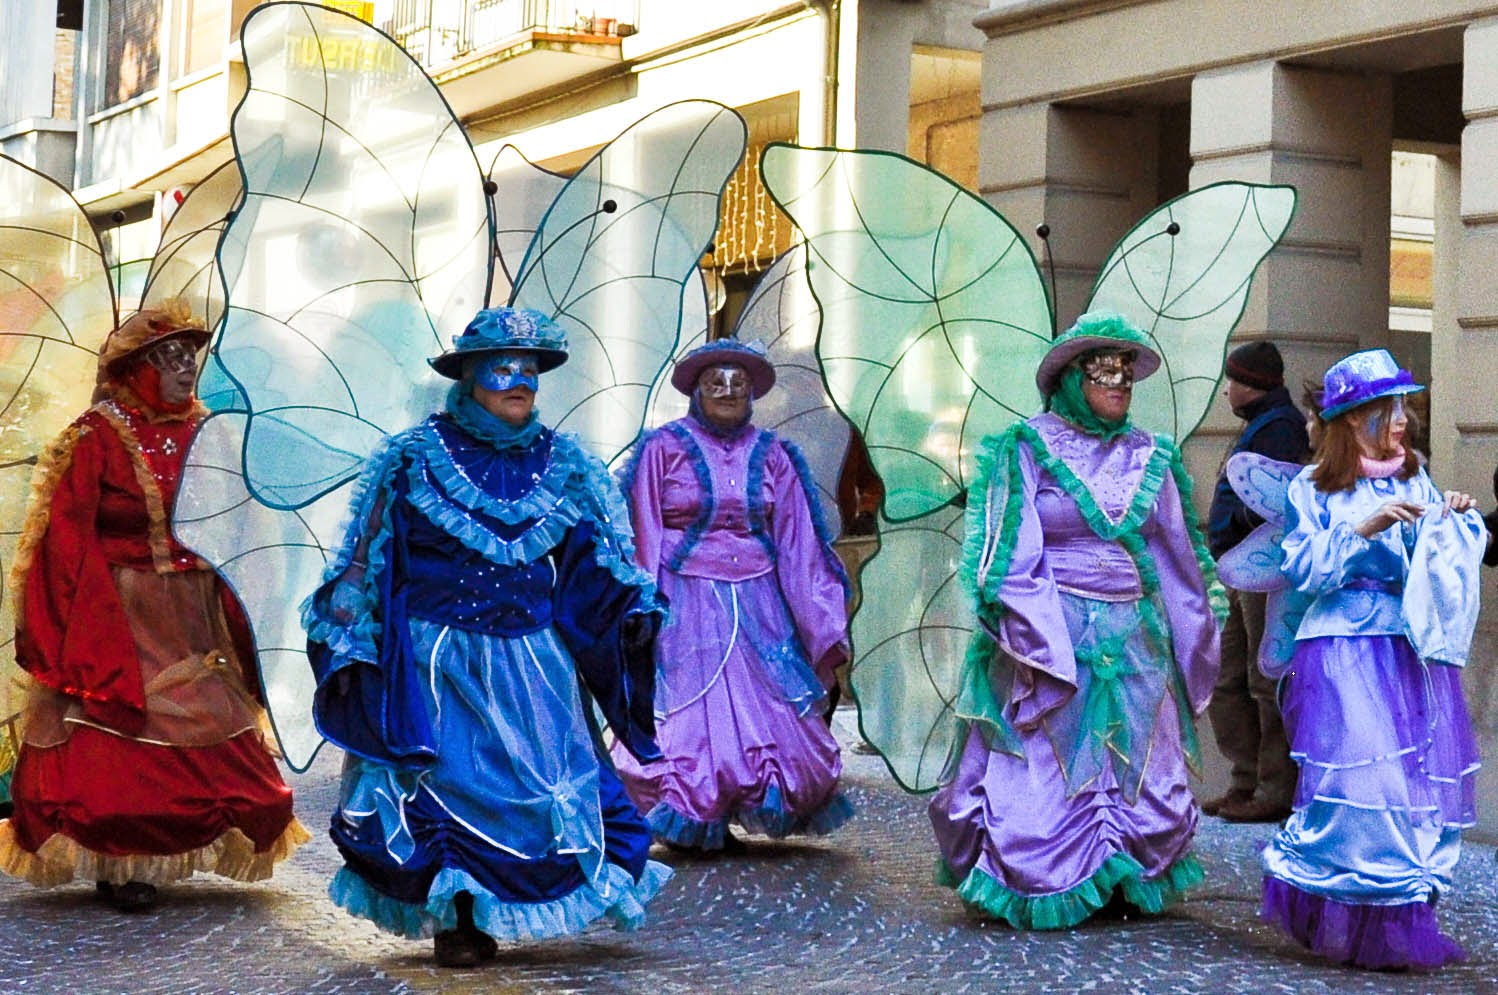 Butterfly ladies at the Carnival in Treviso